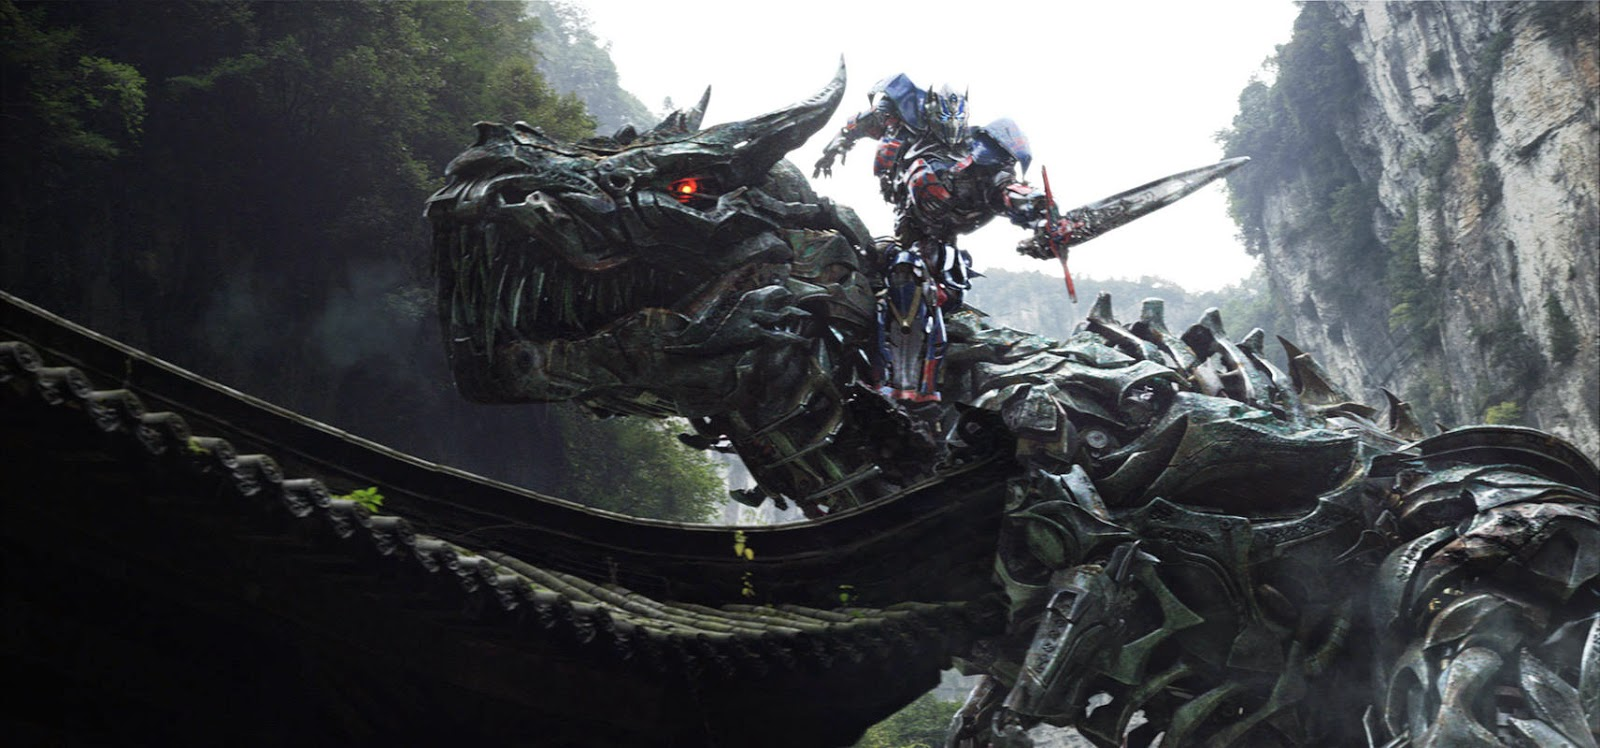 Three New Posters for Transformers: Age of Extinction - IGN |Transformer 4 Age Of Extinction Grimlock